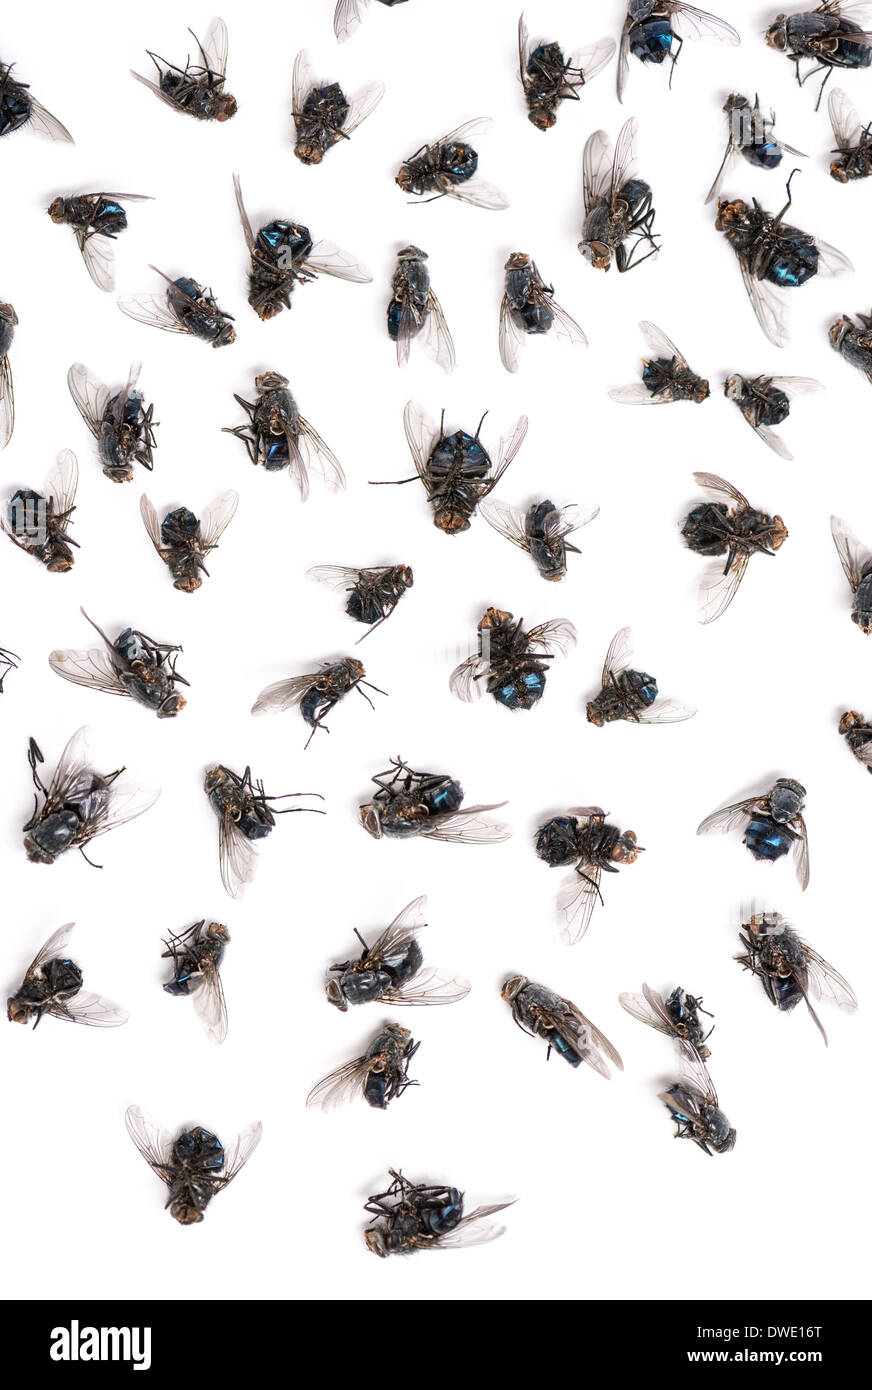 Close-up of a group of dead flies in front of white background - Stock Image